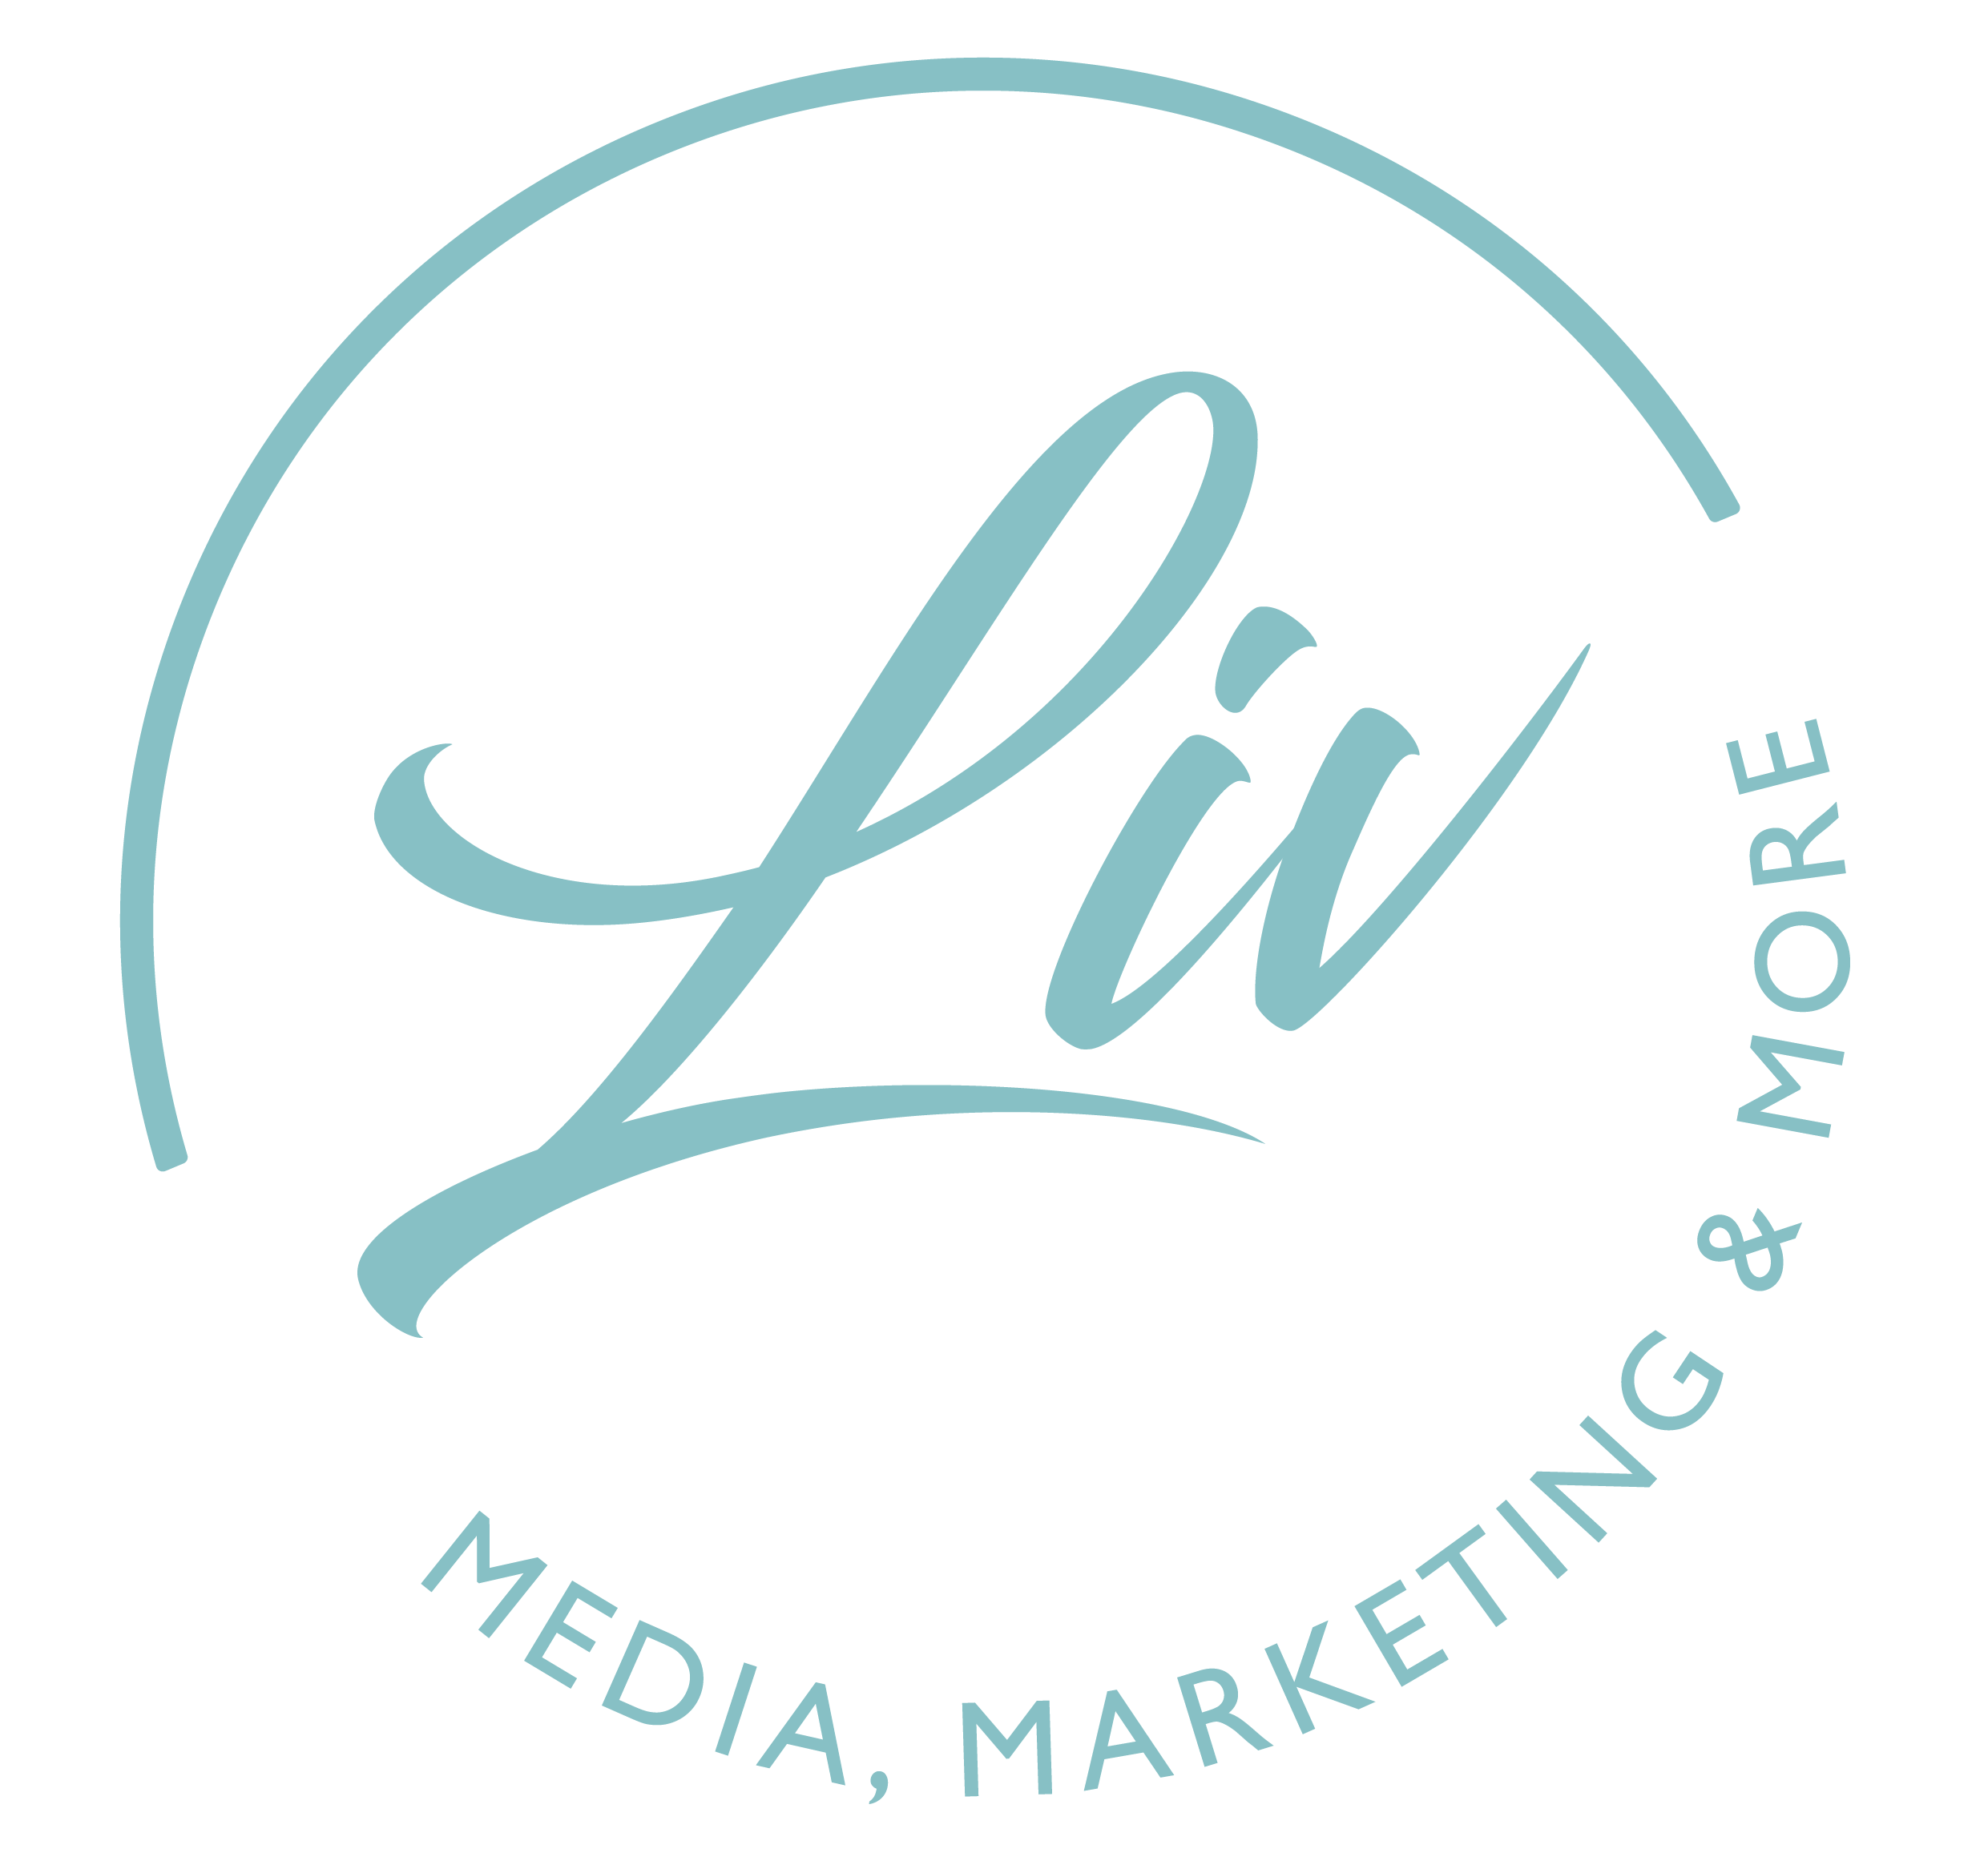 LivMedia logo - Marketing Services, based in the Upper Hunter